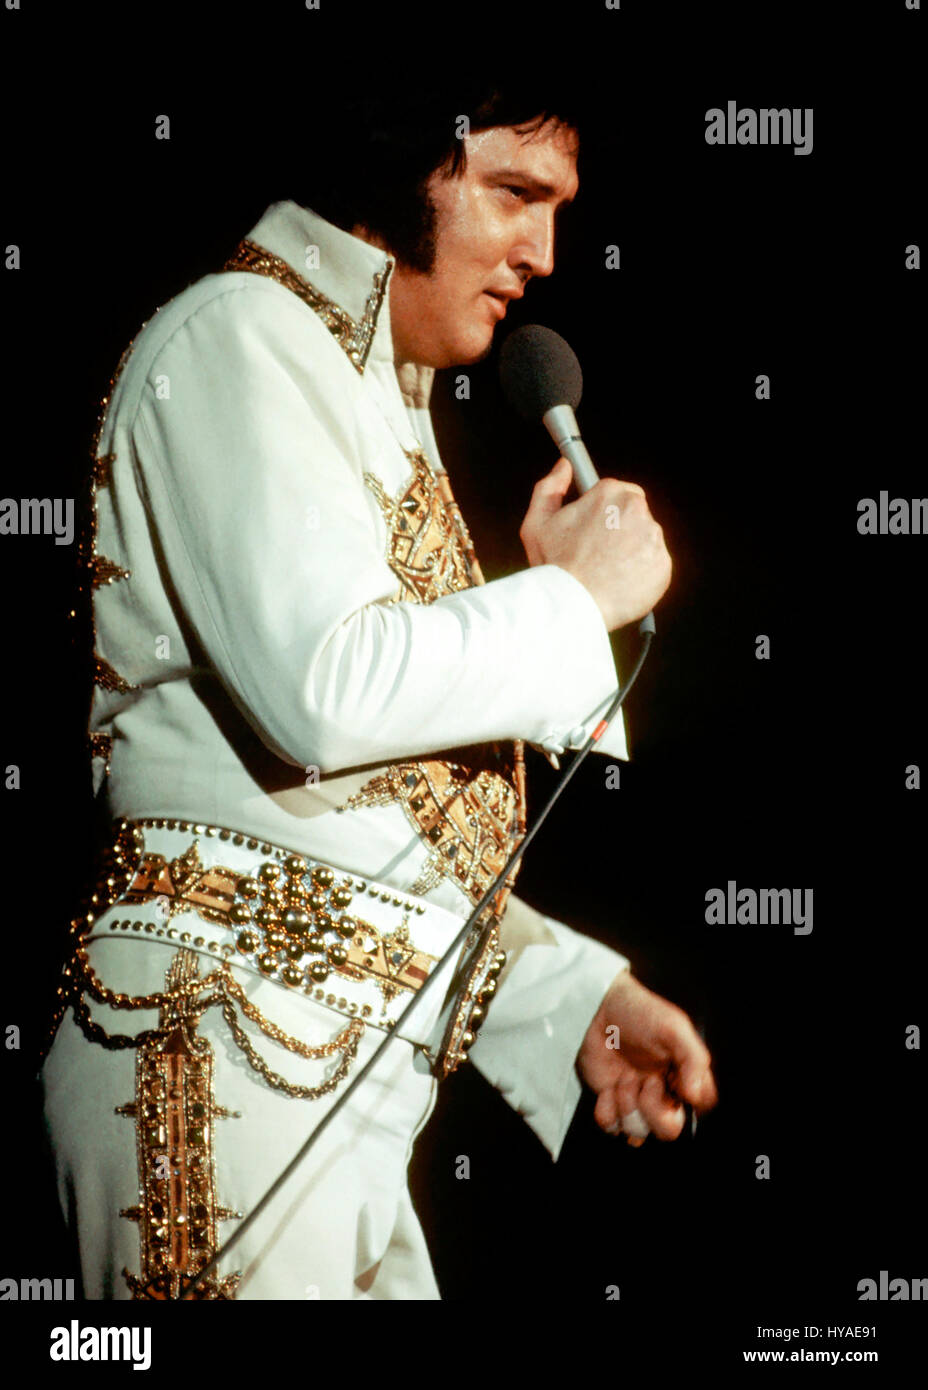 Elvis Presley In Concert At The Providence Civic Center On May 23 Stock Photo Alamy